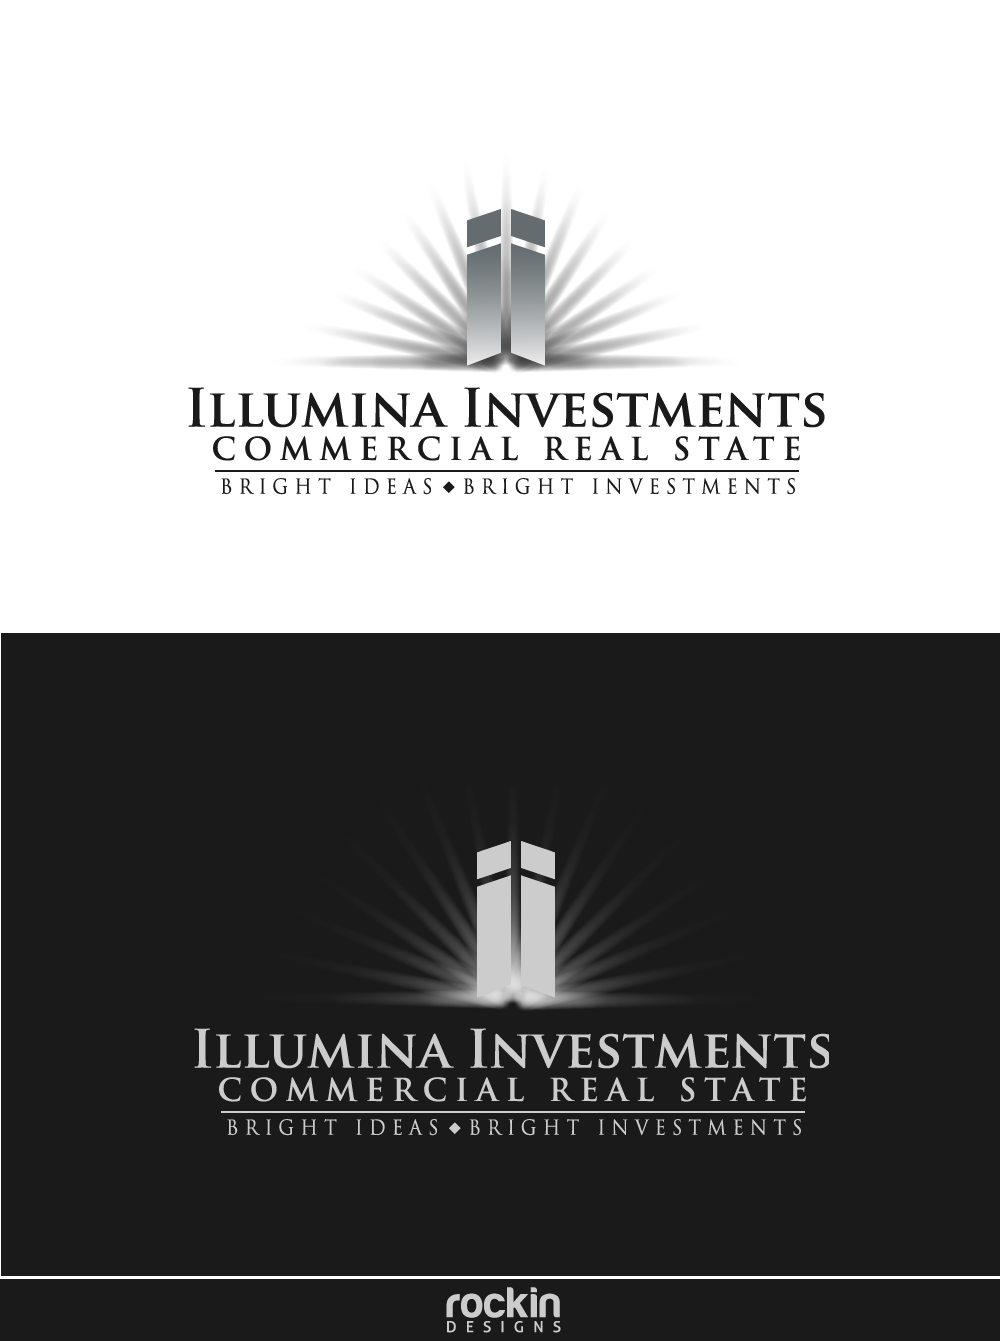 Logo Design by rockin - Entry No. 77 in the Logo Design Contest Creative Logo Design for Illumina Investments.